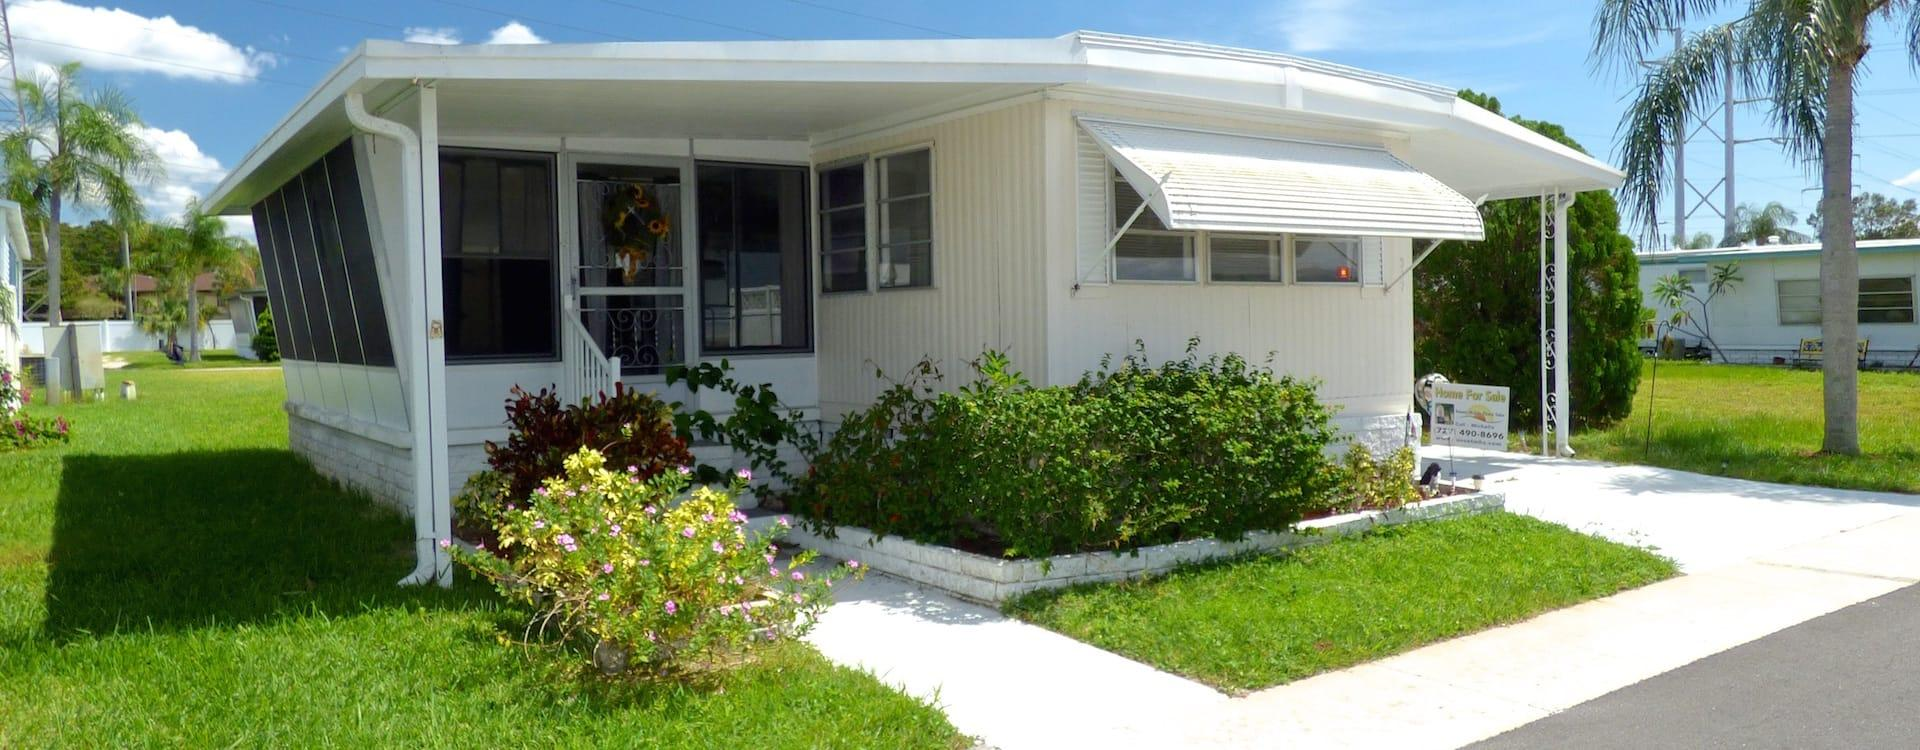 mobile-home-for-sale-20170919-001-Wide Mobile Home Parks Clearwater Fl on rent clearwater fl, city of clearwater fl, mobile home parks seminole florida, mobile home in clearwater florida, queen fleet deep sea fishing clearwater fl, restaurants clearwater fl, mobile home 55 plus communities, apartments clearwater fl, mobile home parks bellingham wa, mobile home parks tampa florida area, mobile home park tampa fl, retirement communities clearwater fl, timeshares clearwater fl, churches clearwater fl, mobile home communities florida, clubs clearwater fl, mobile home parks largo florida, coachman park clearwater fl, mobile homes florida keys fl, home builders clearwater fl,